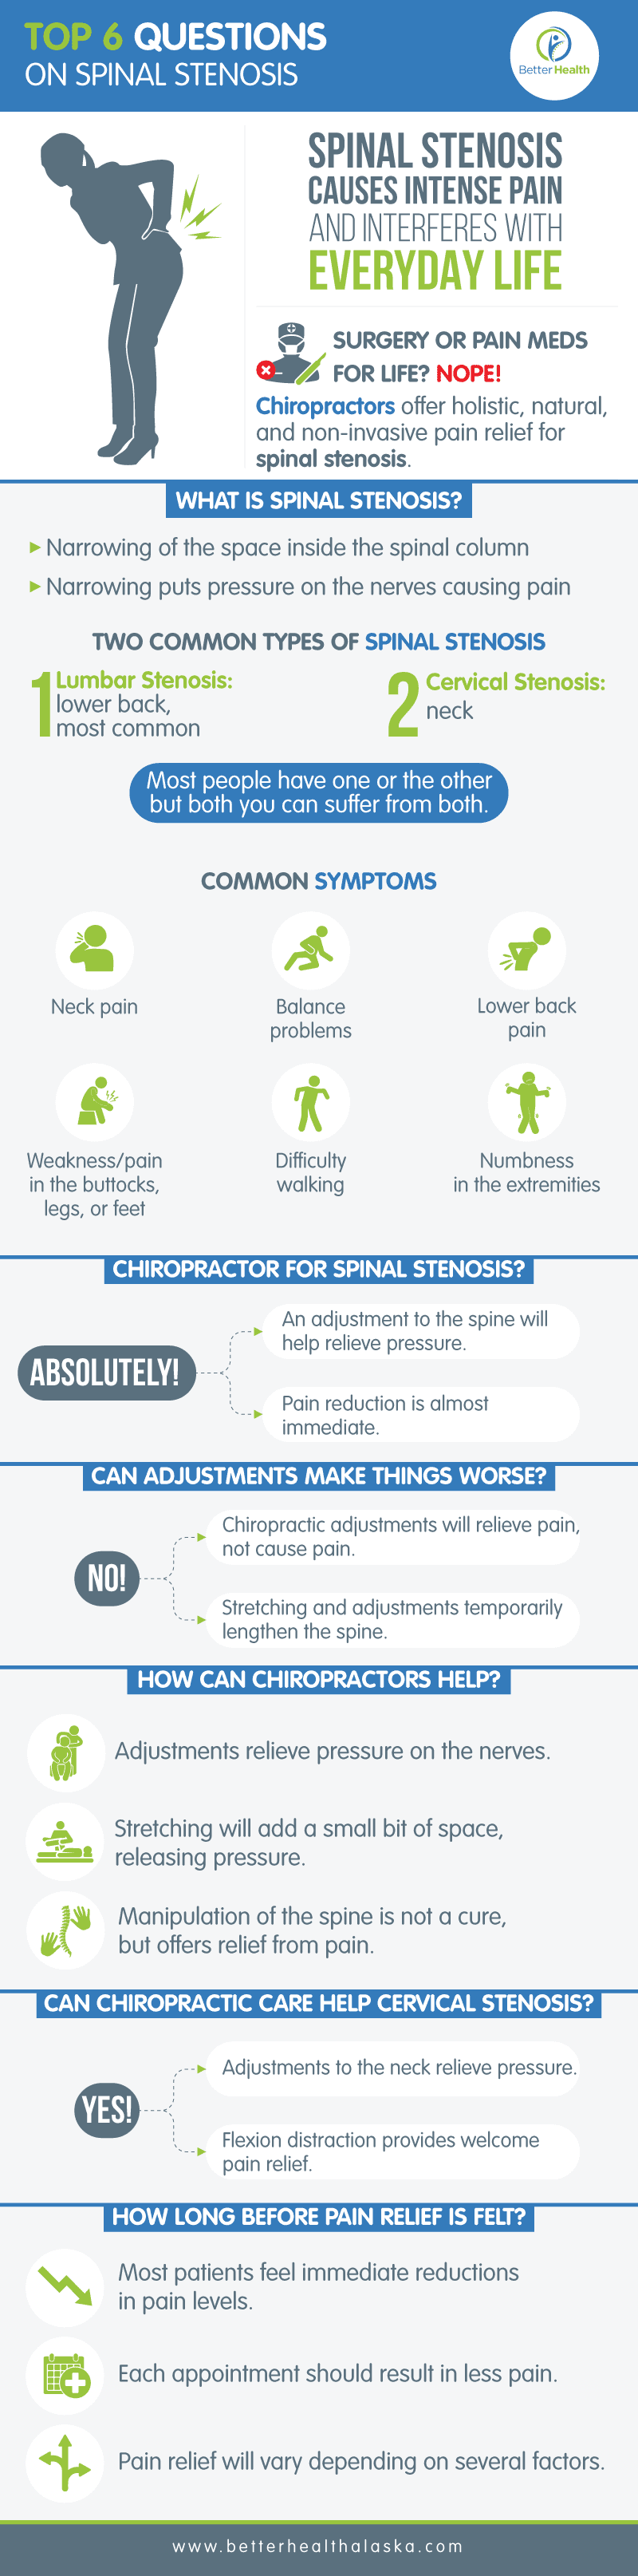 Top 5 Questions People with Spinal Stenosis Have for Their Chiropractor Infographic